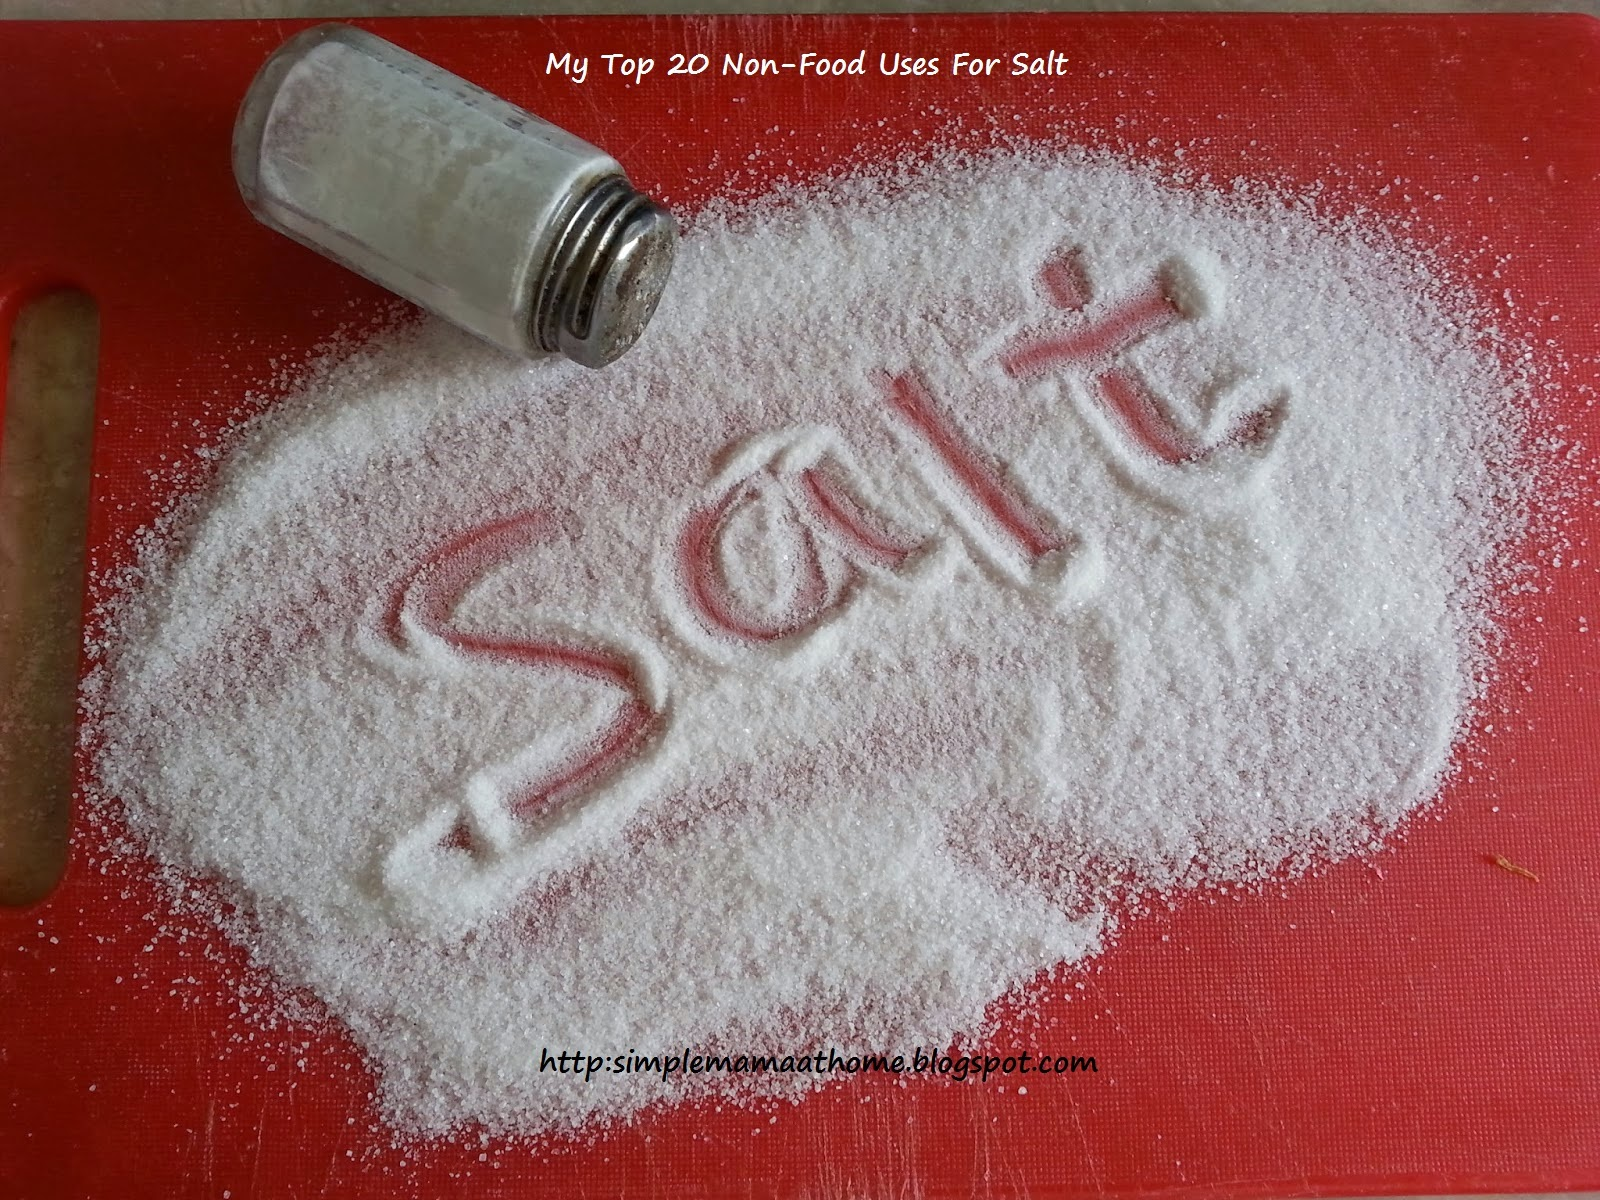 Non-Food Uses For Salt